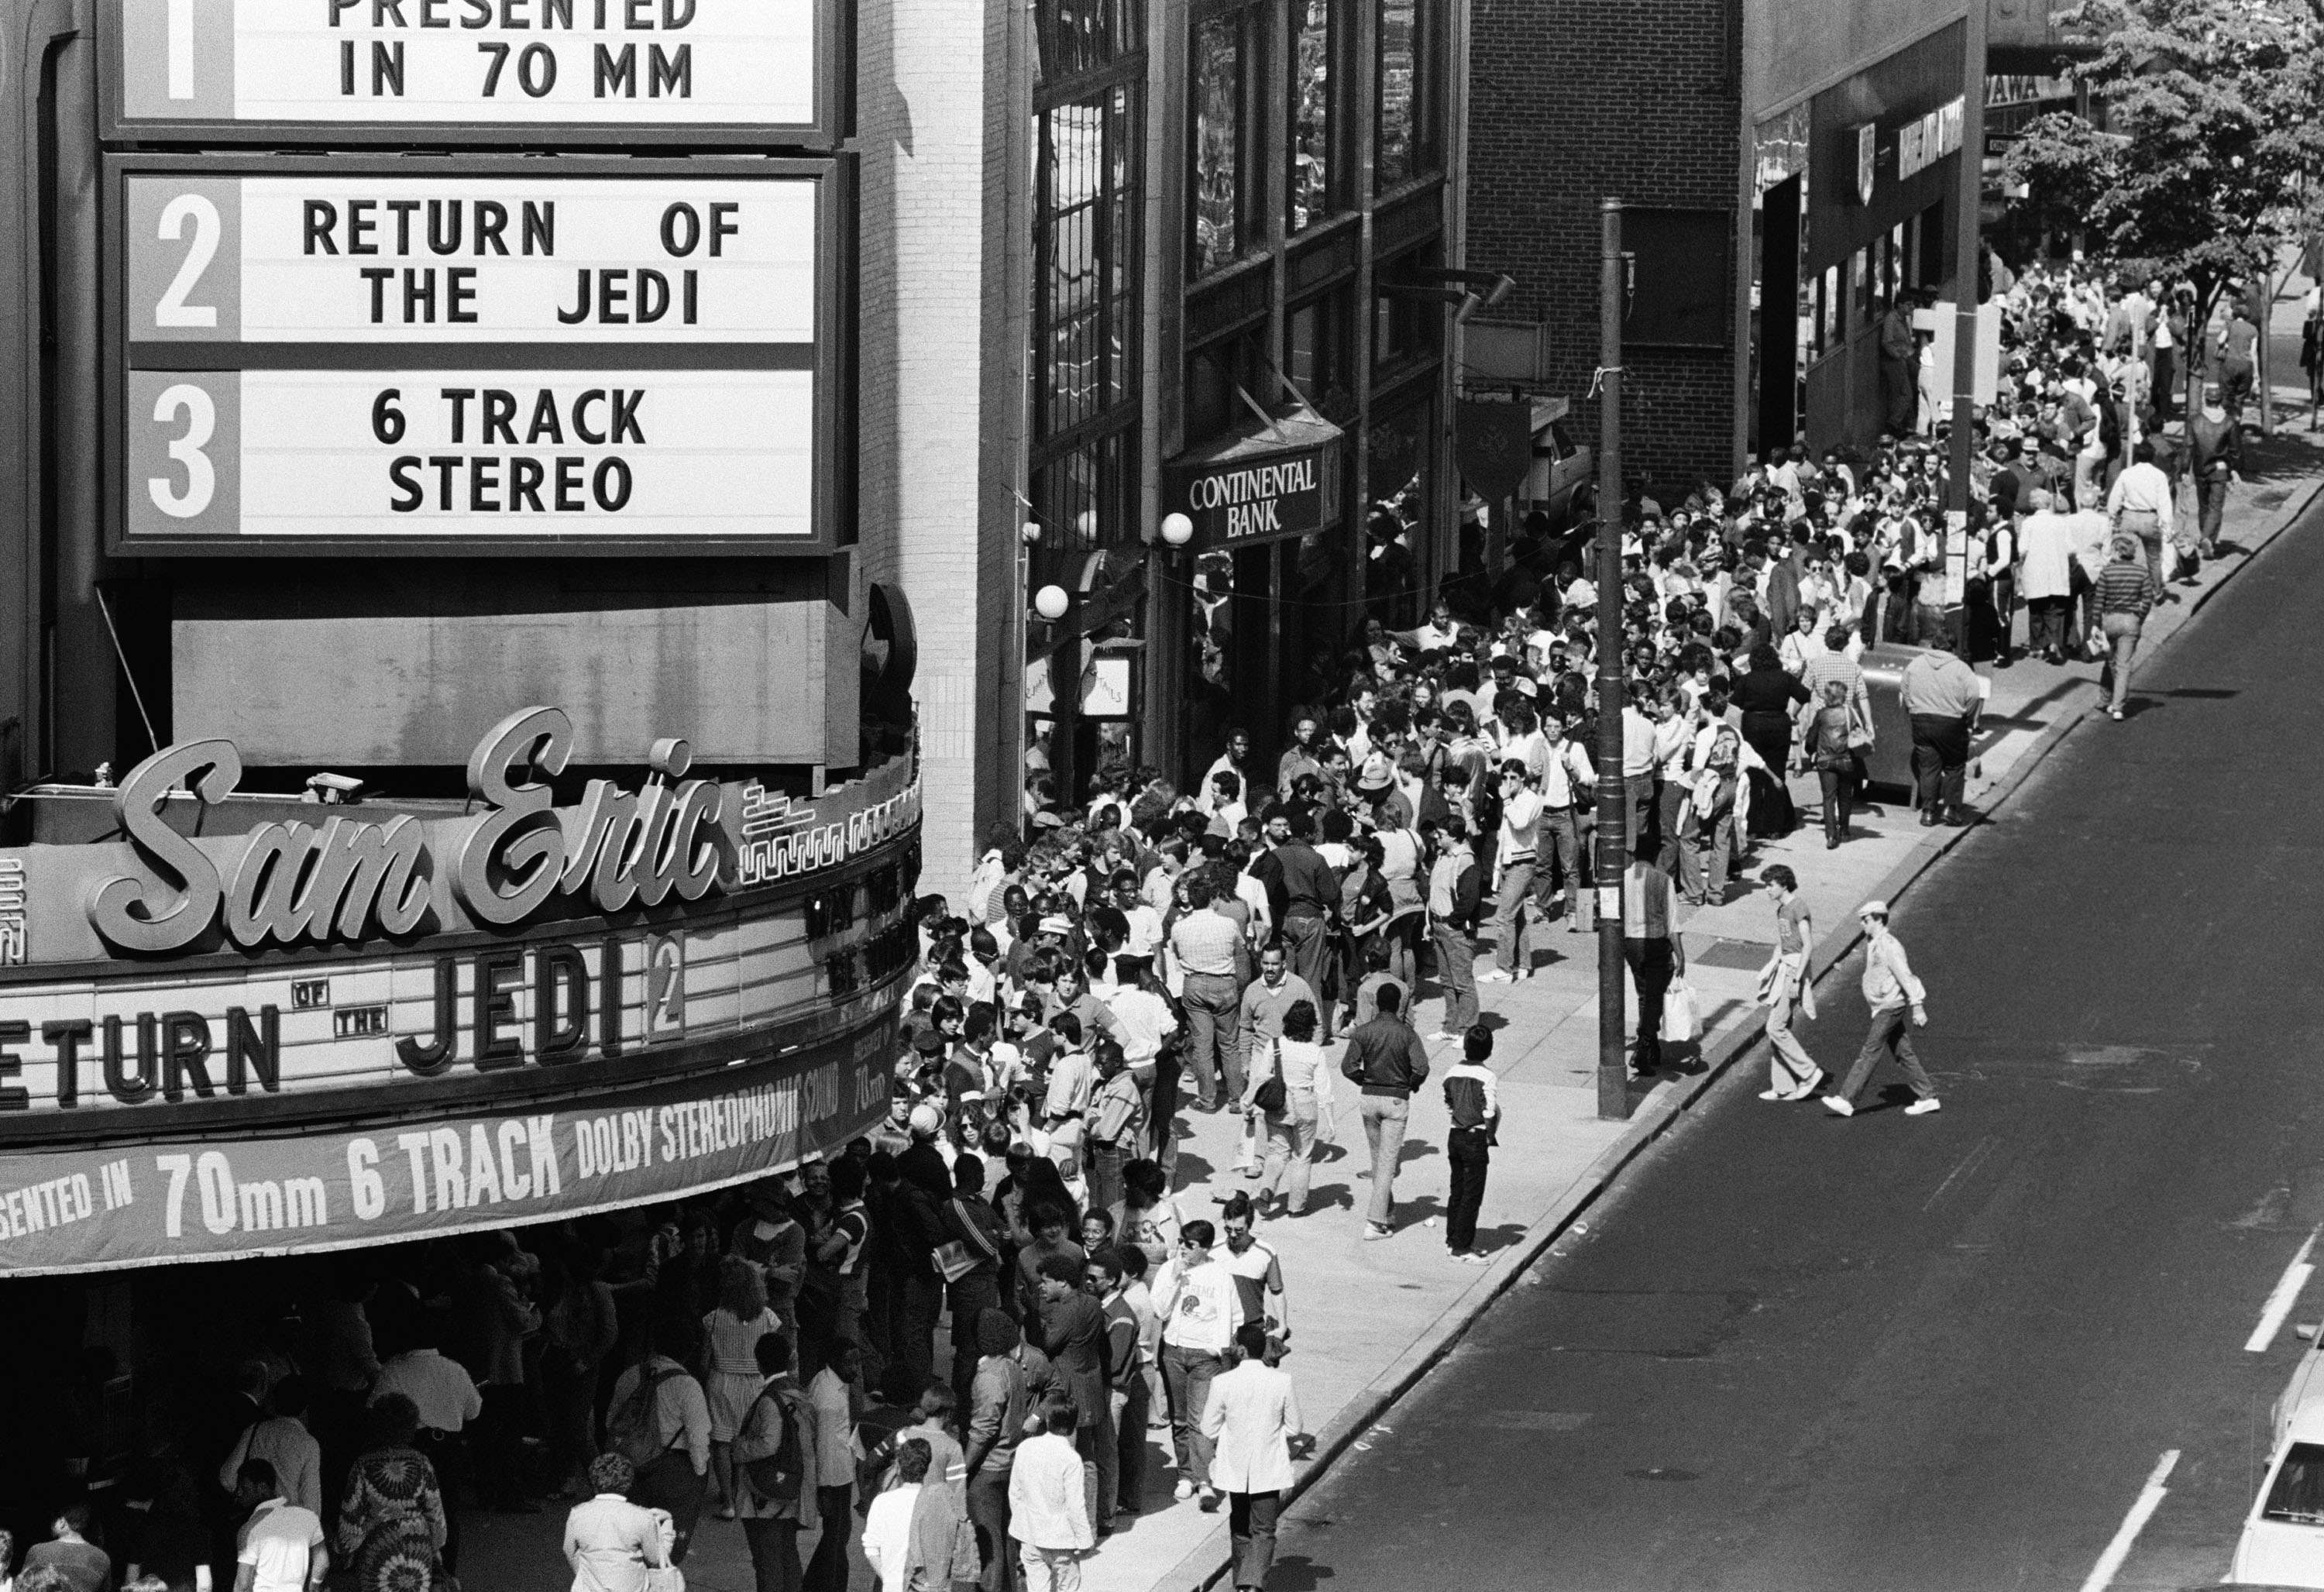 Waiting In Line To See Star Wars 1977 2000 Flashbak